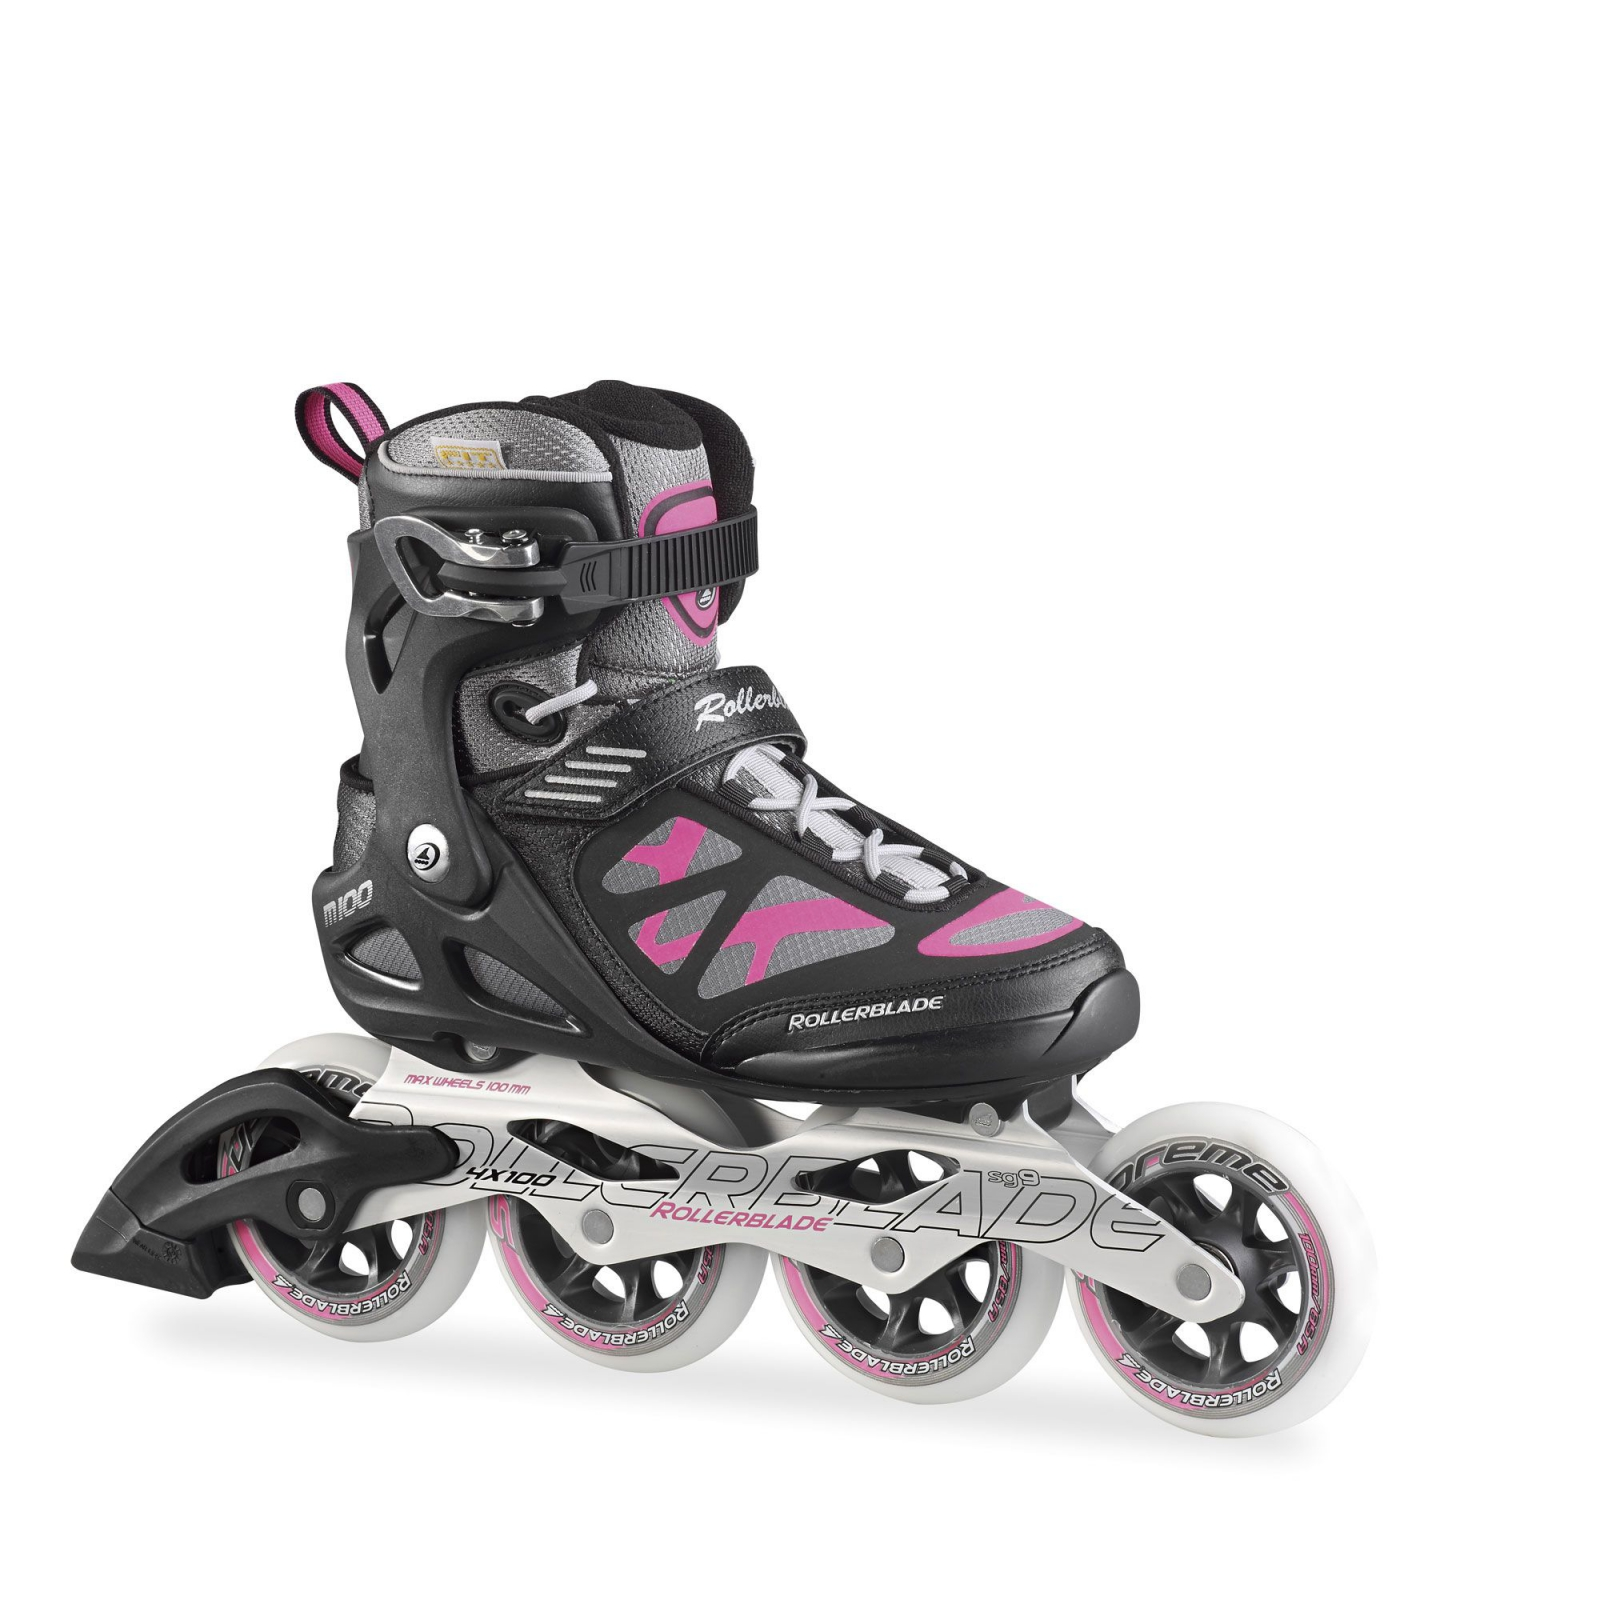 Rollerblade Macroblade 100 W - 40